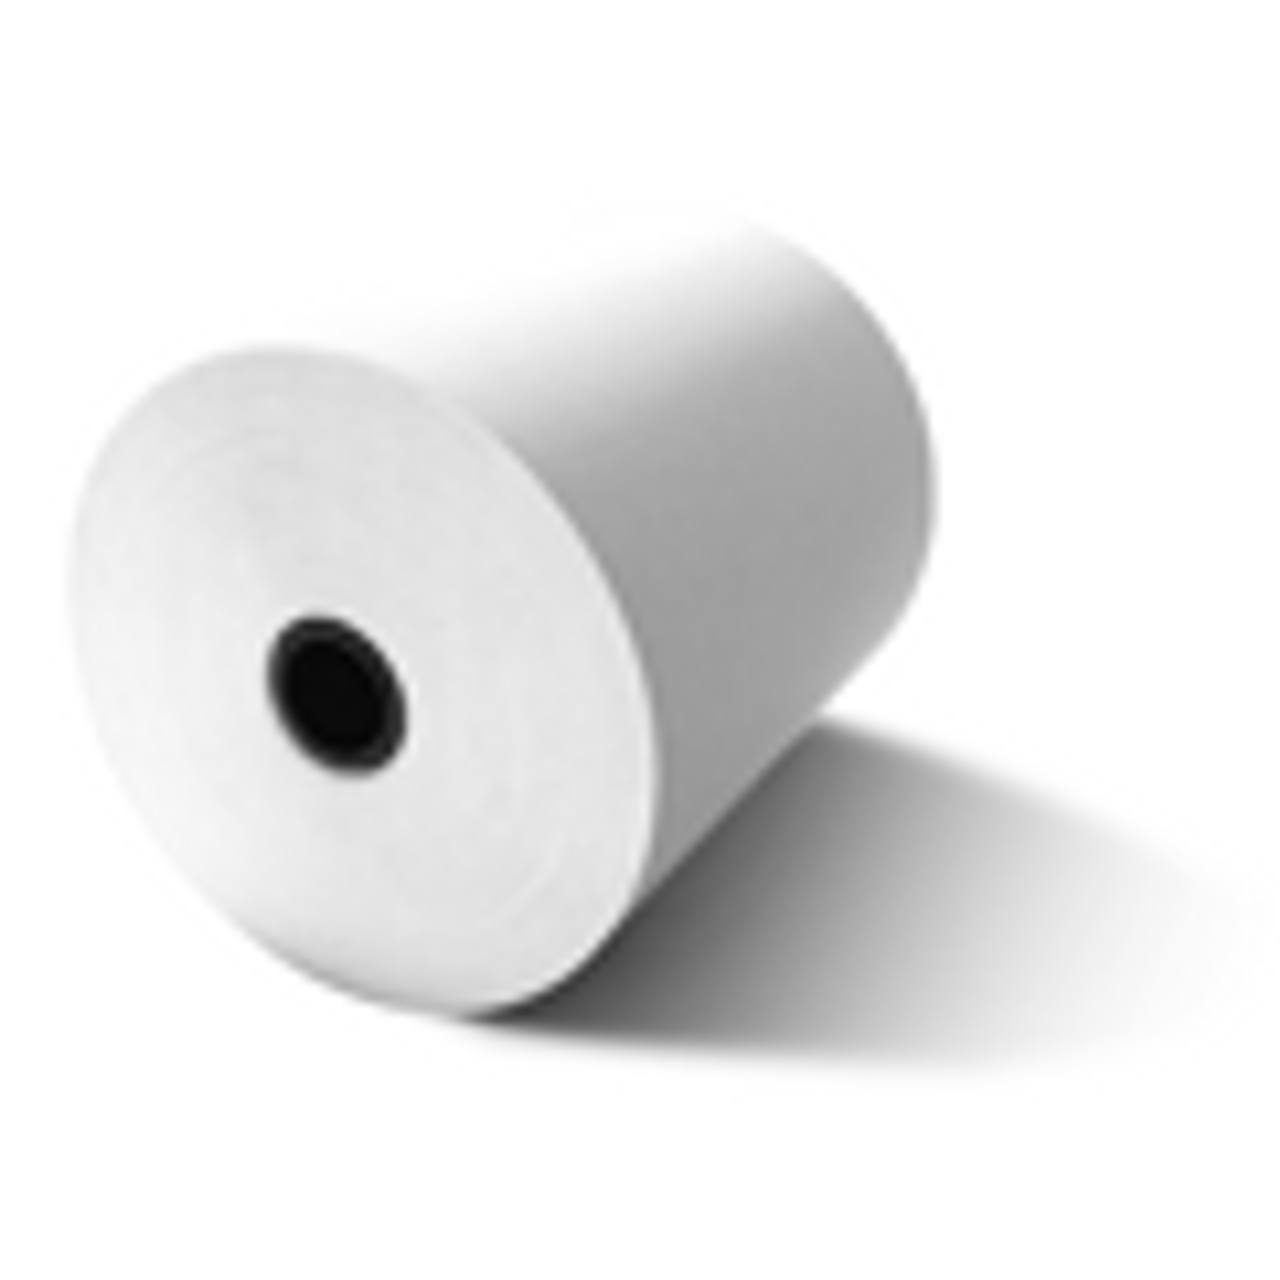 "3 1/8"" Thermal Paper Rolls"